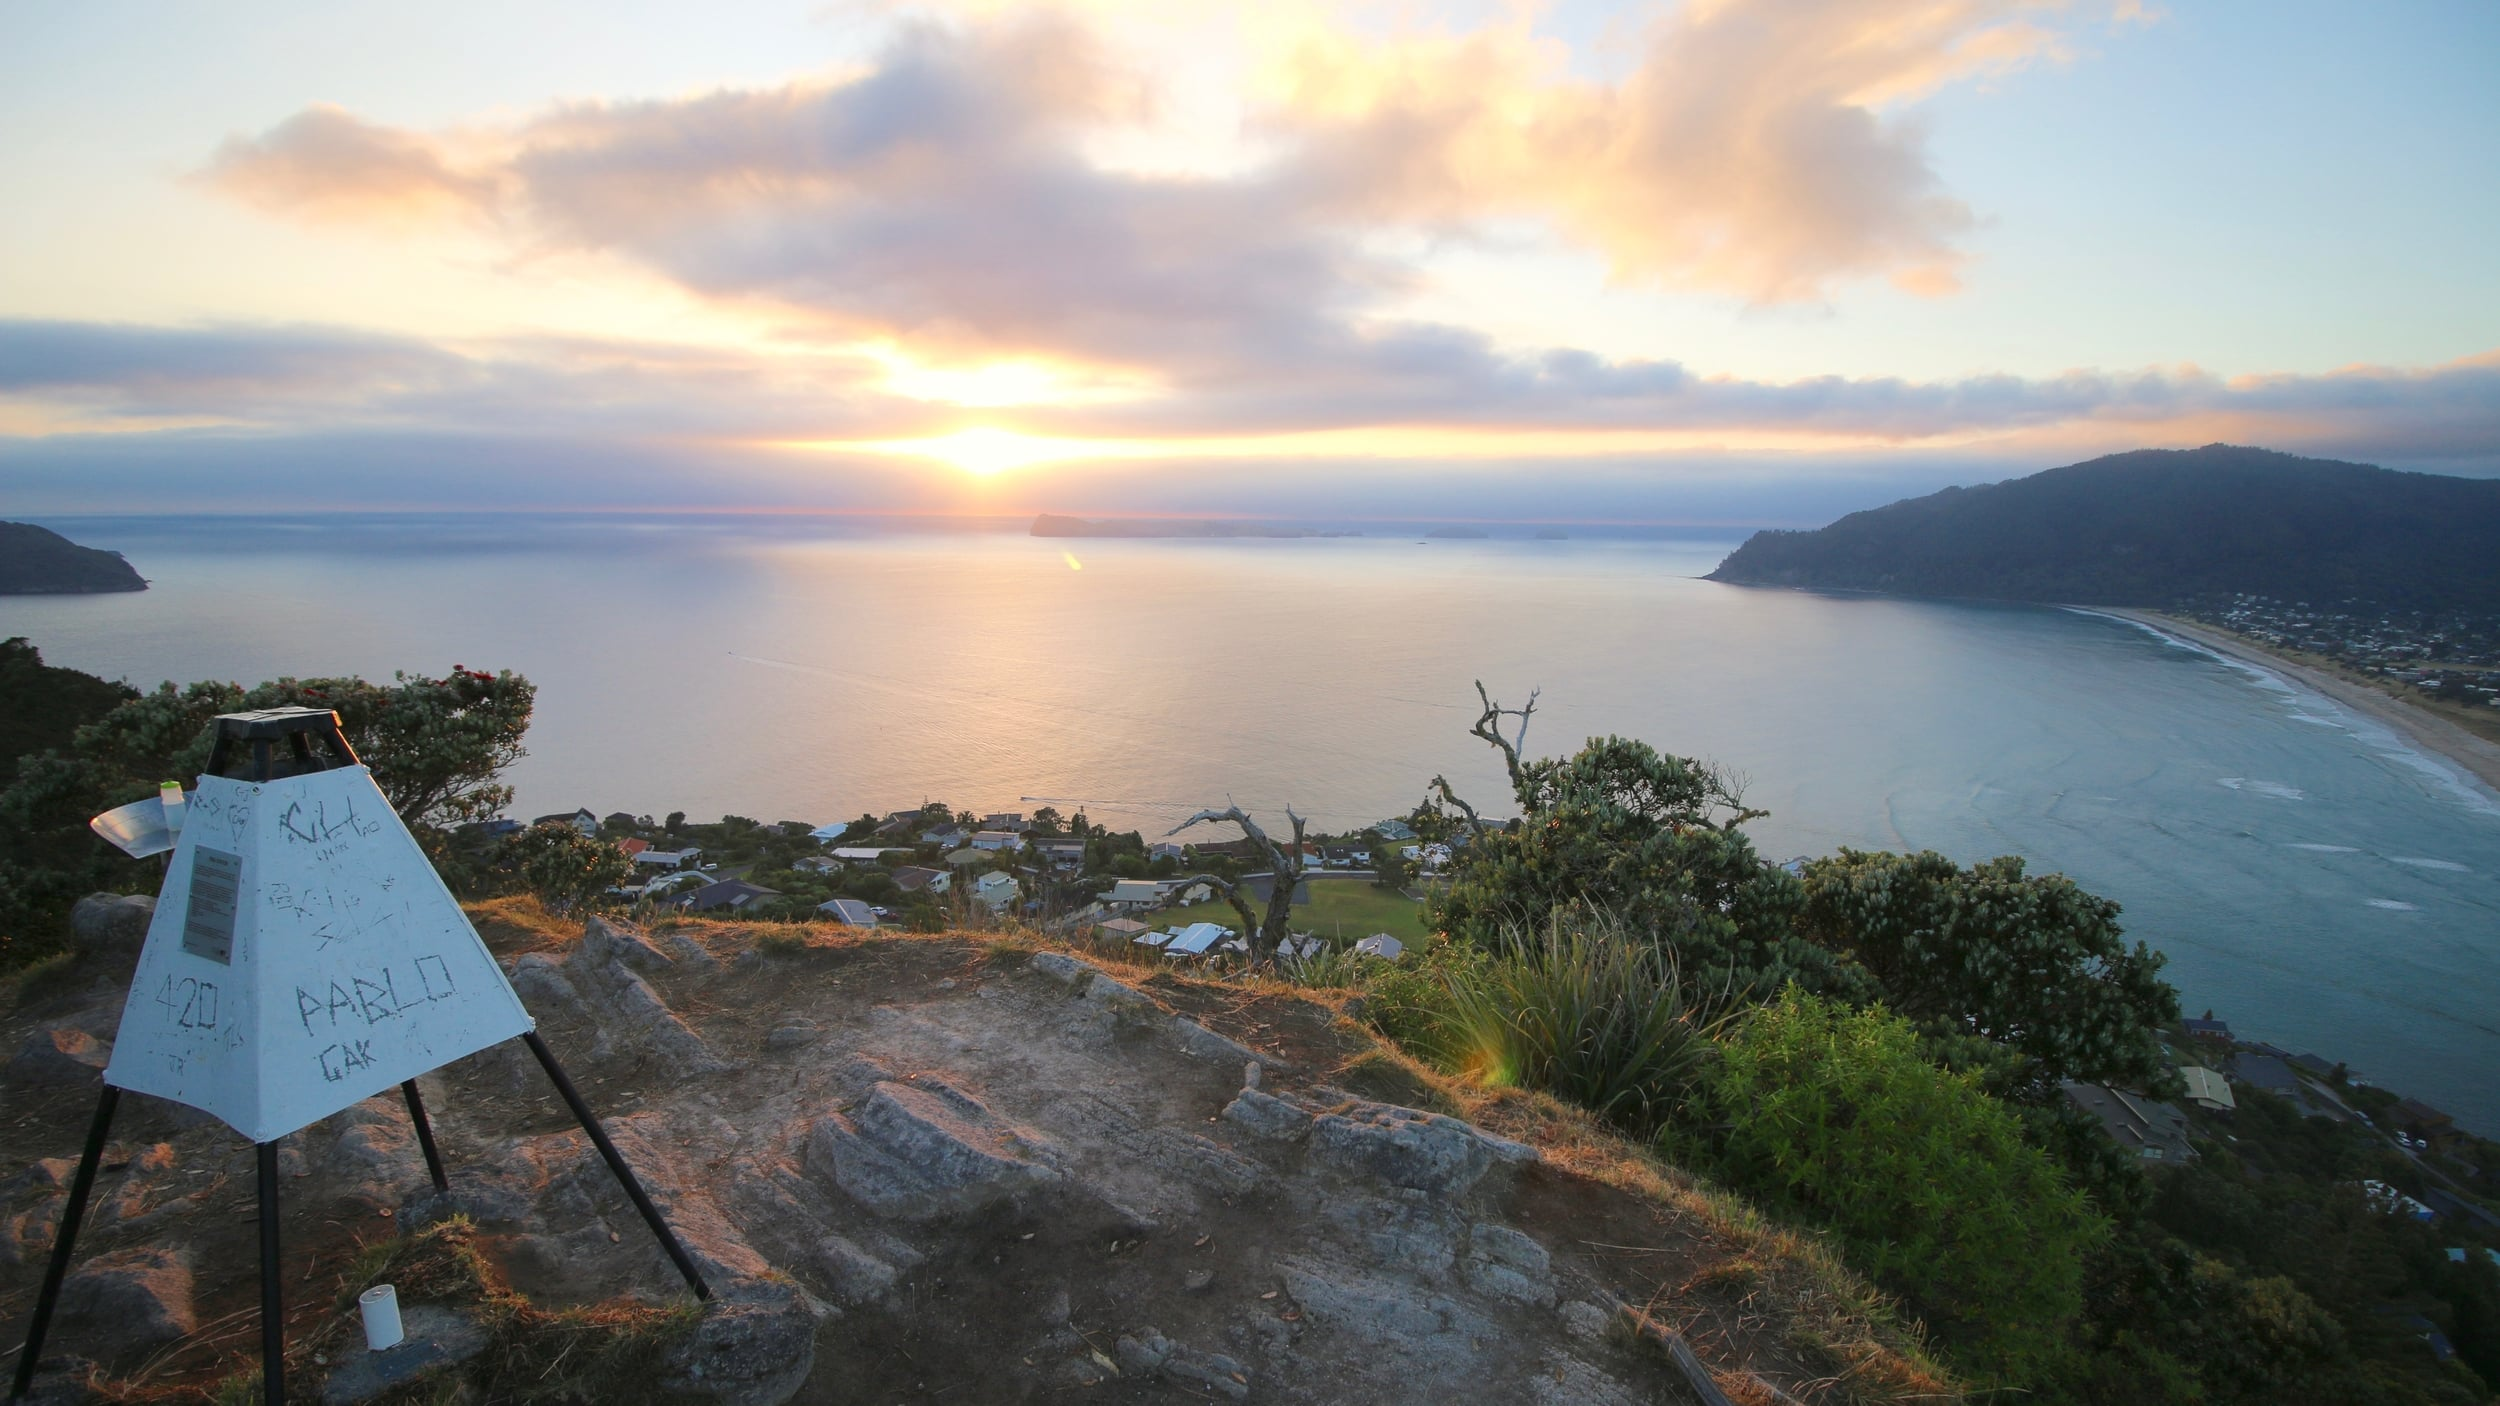 Sunrise at Top of Mt. Paku